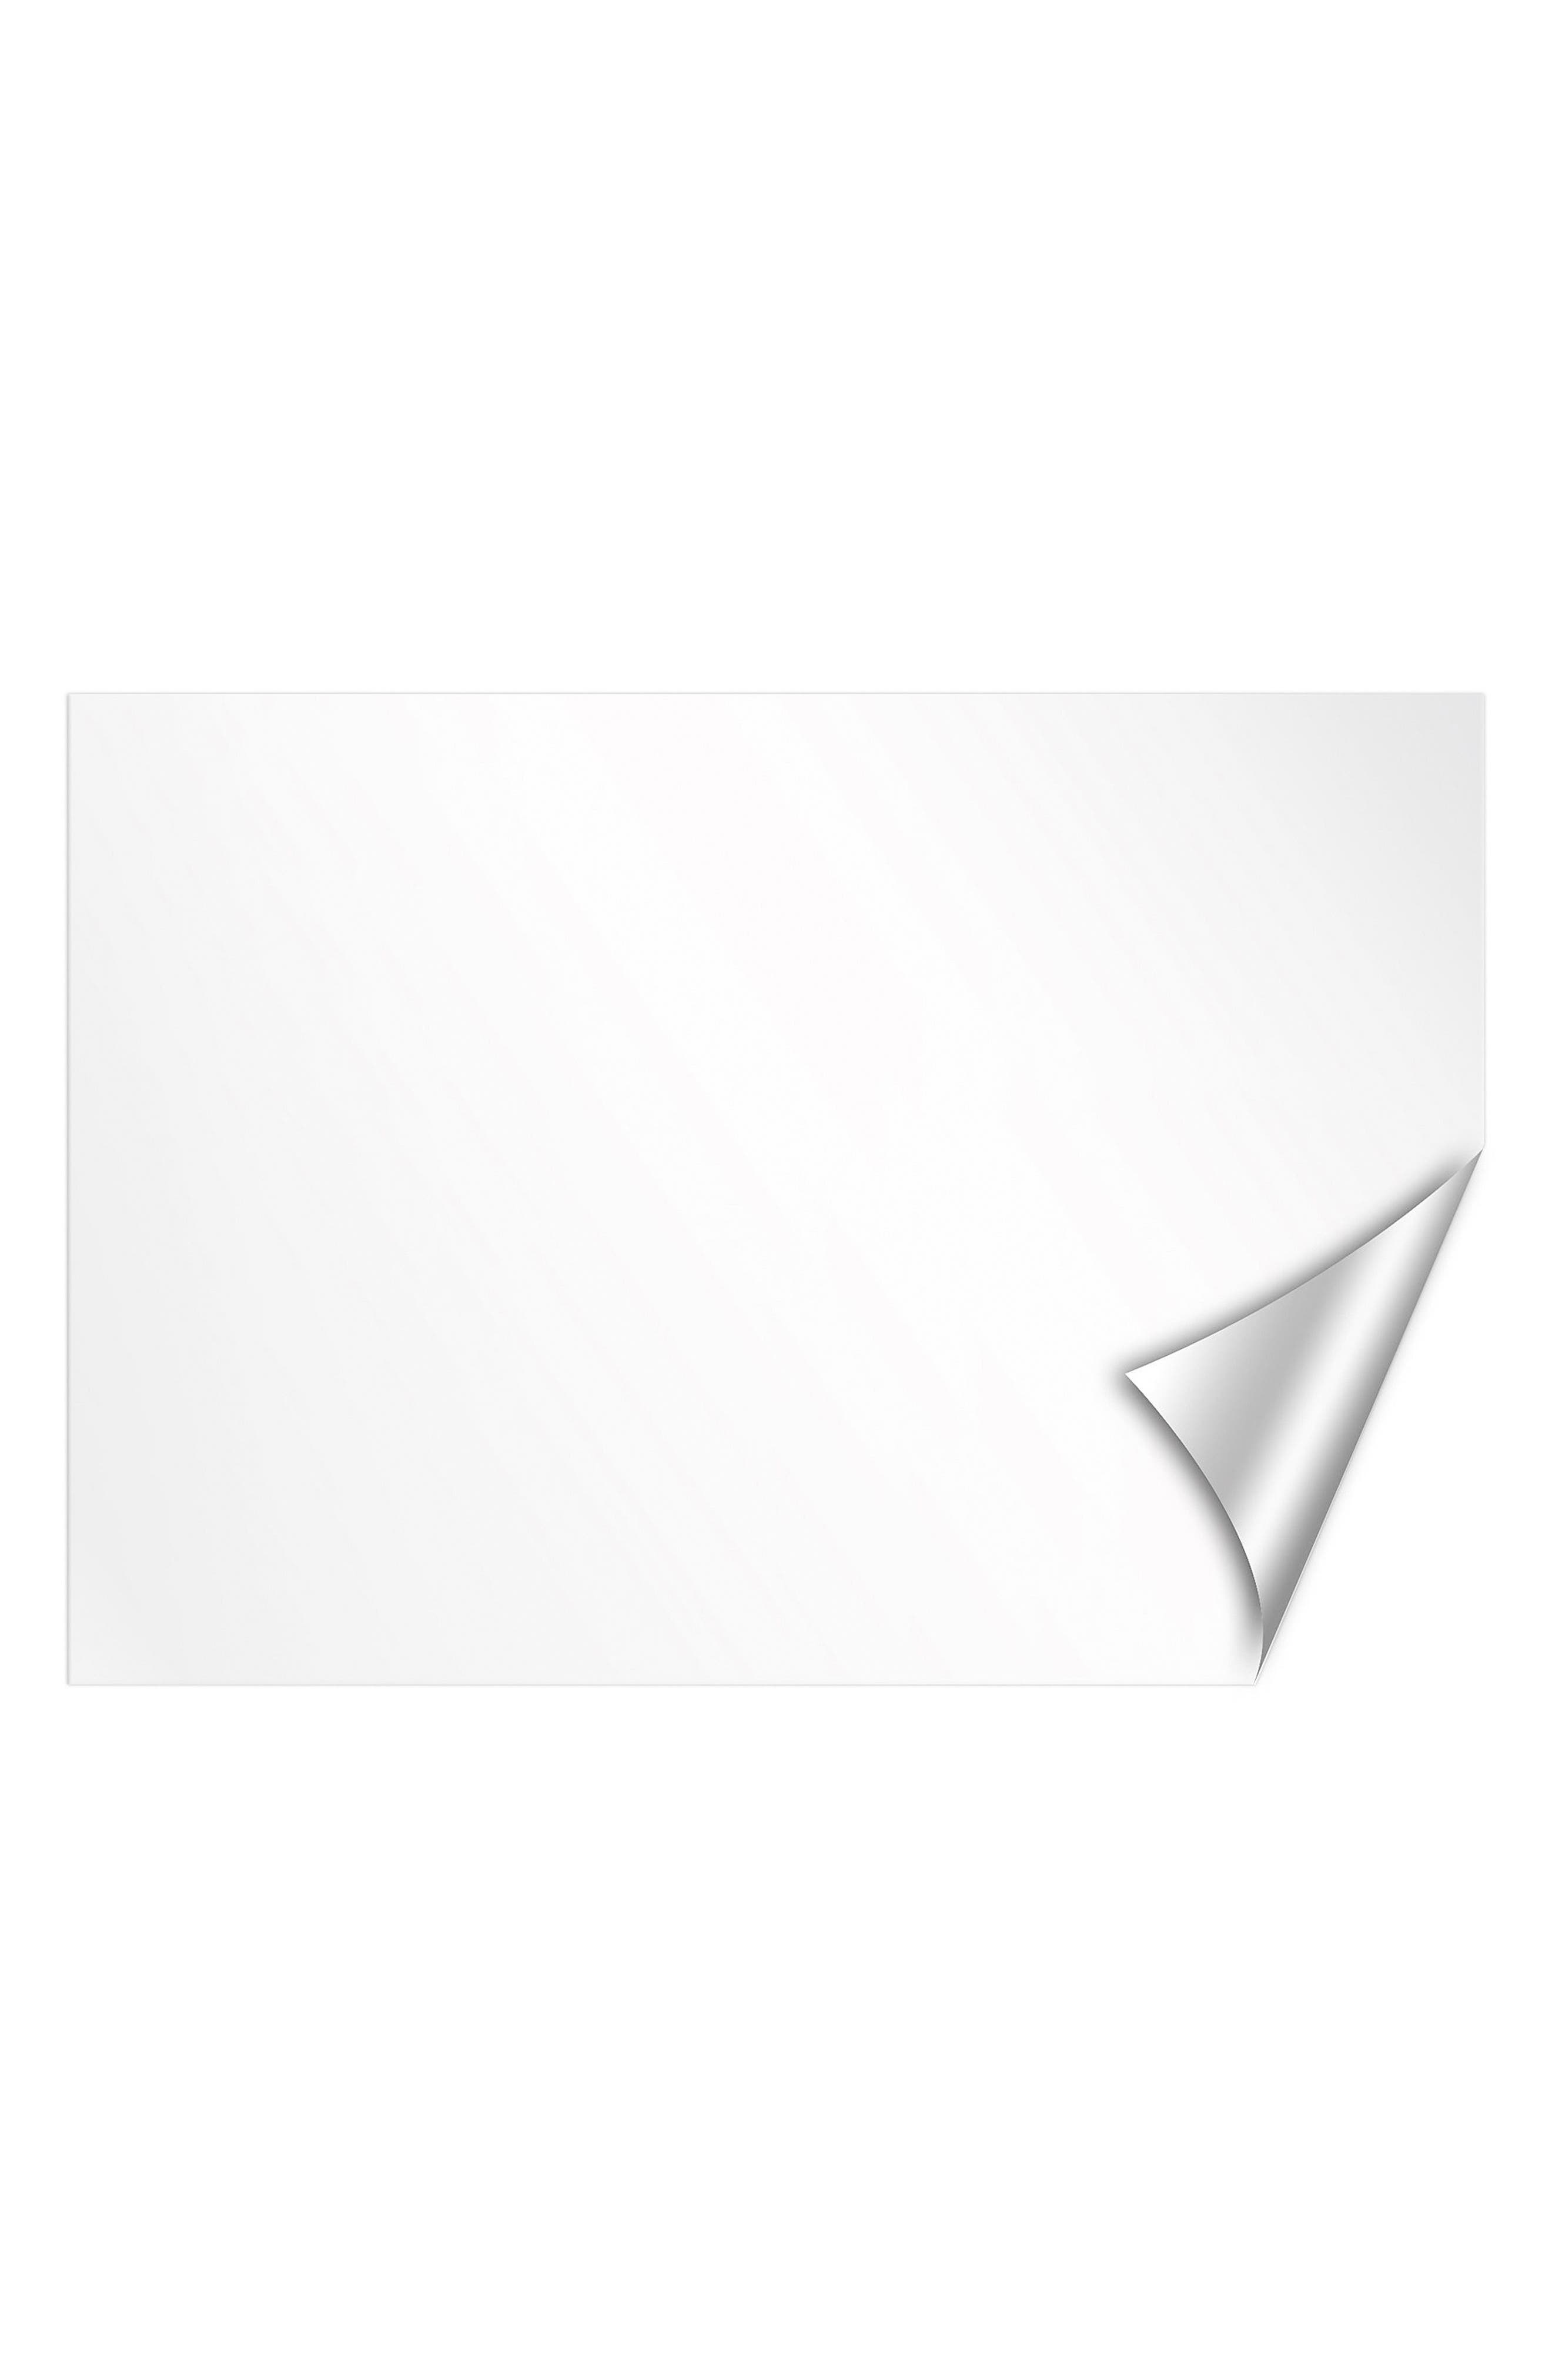 Set of 2 Dry Erase Wall Decals,                             Main thumbnail 1, color,                             White Off-White